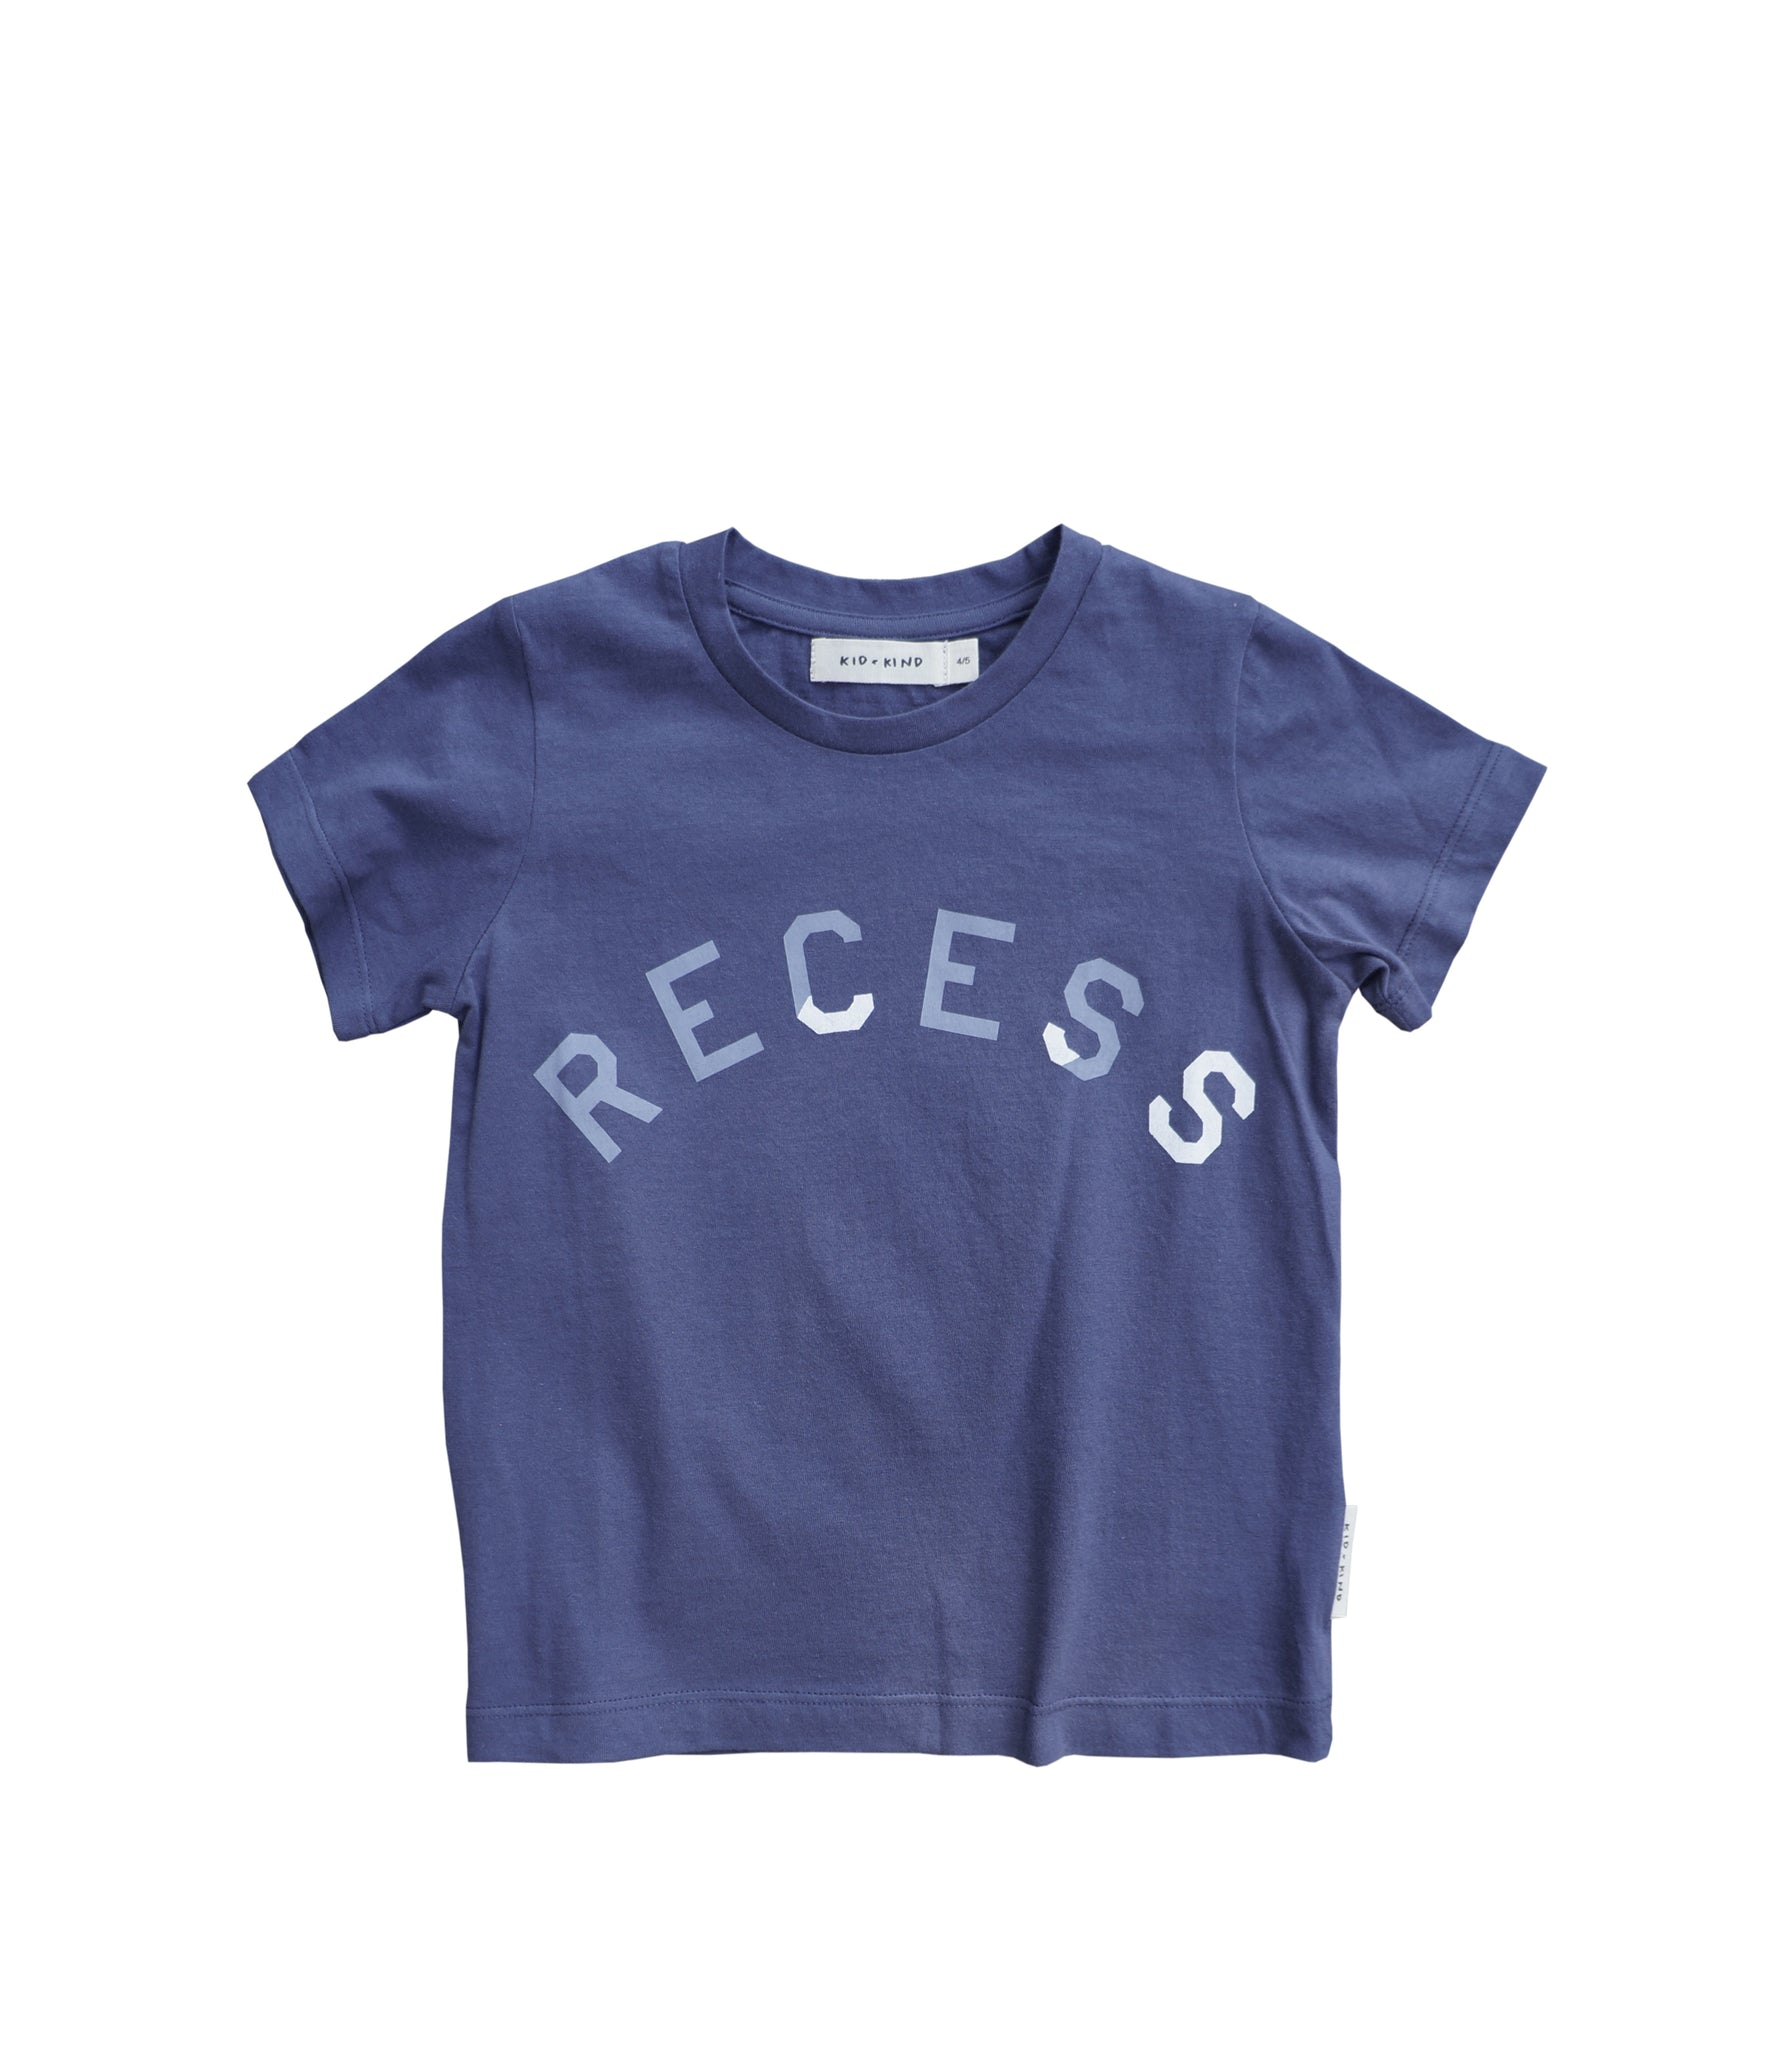 RECESS T-SHIRT (NAVY)